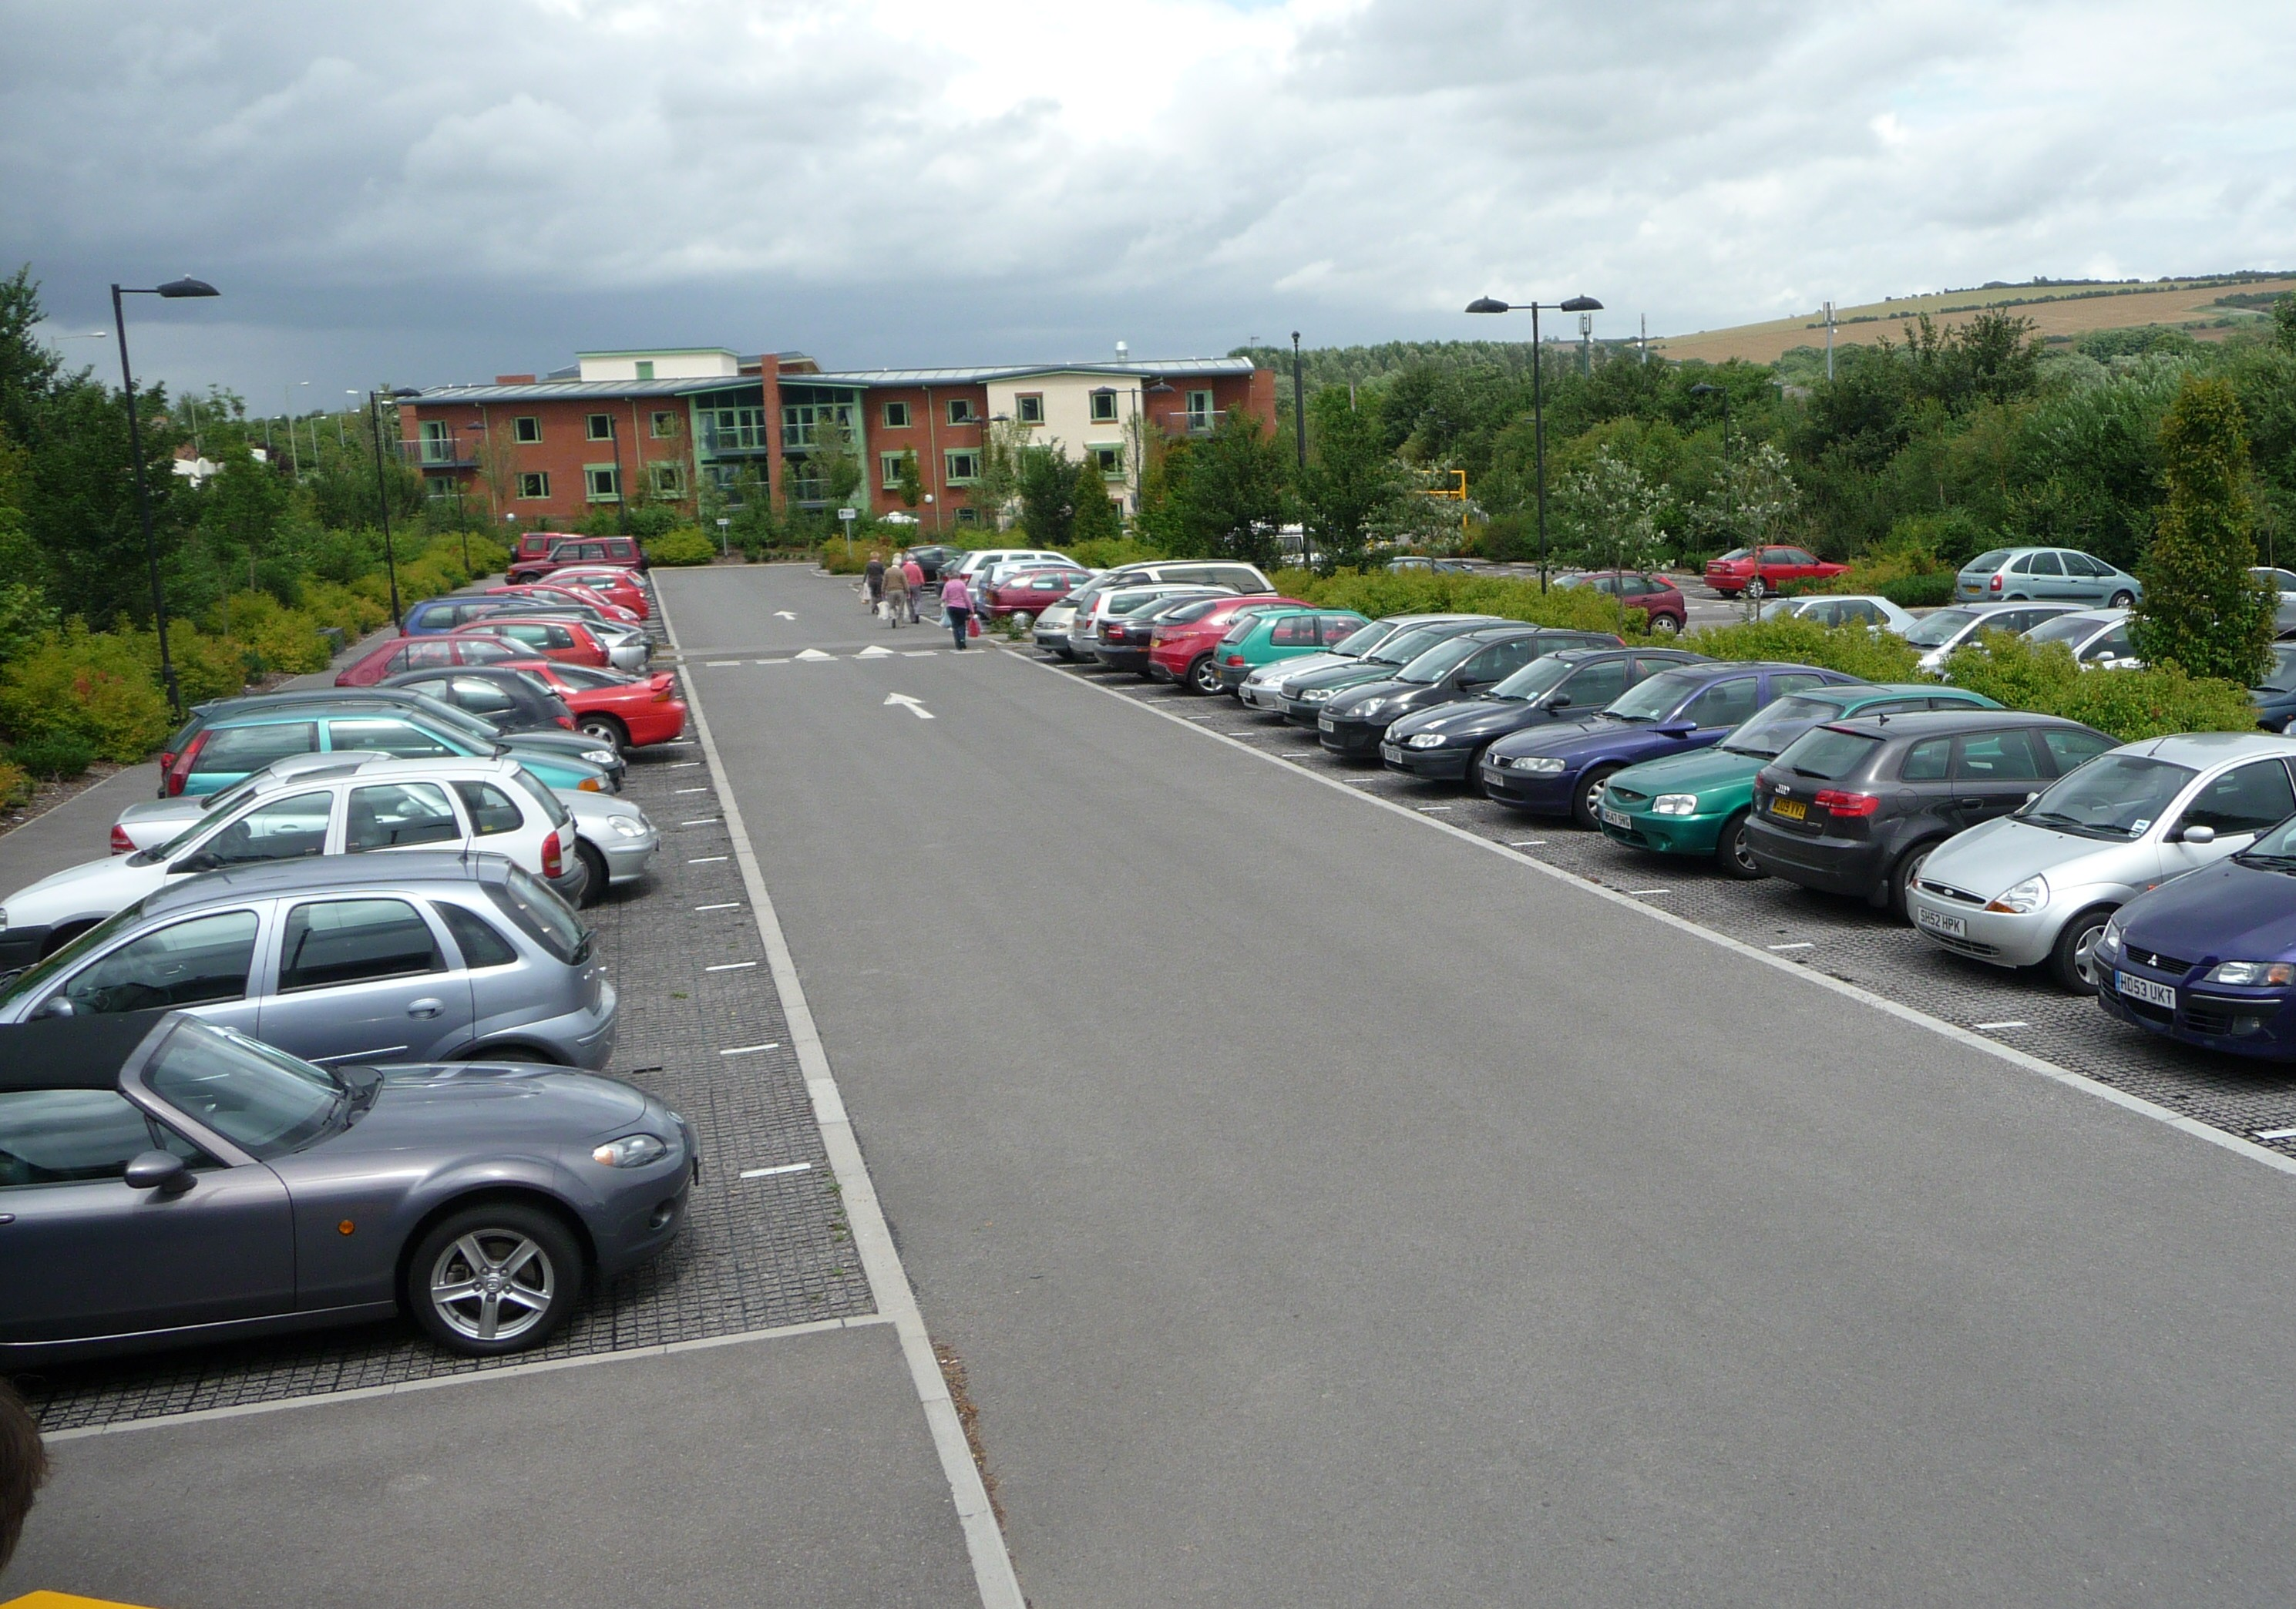 Car Parking Of Taaffe Place Brooklun